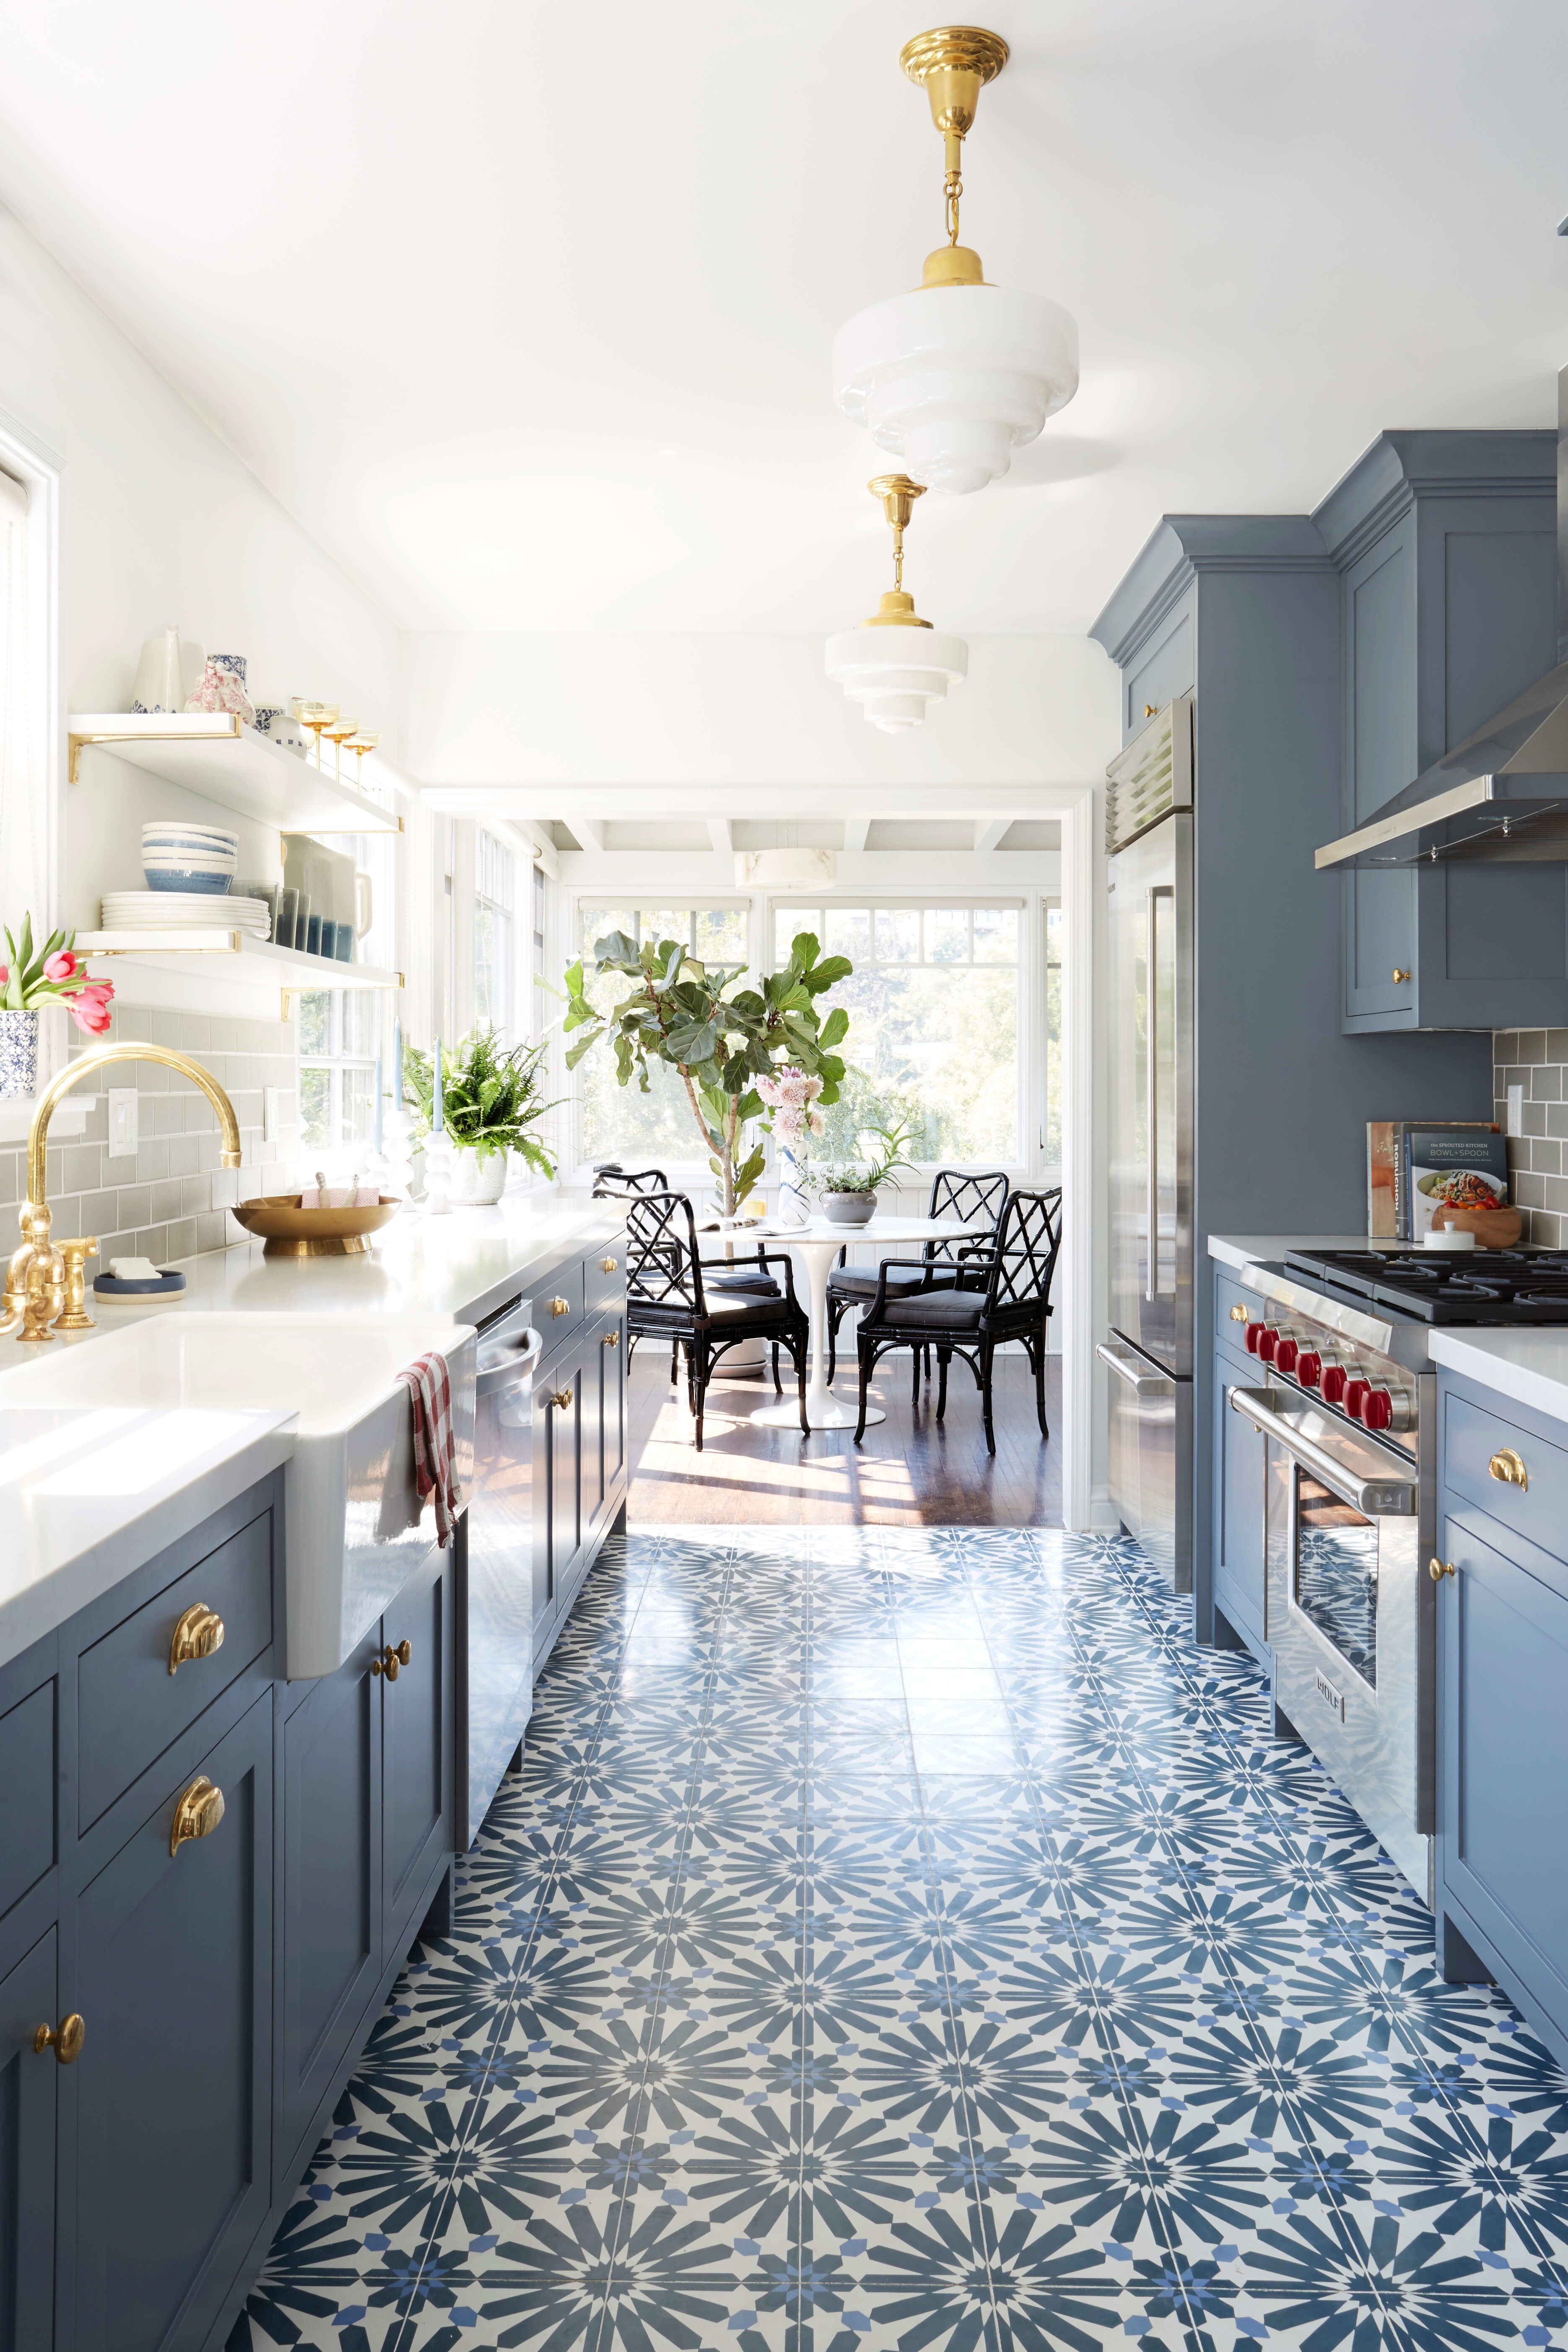 best kitchen designs island bench emily henderson s small space solutions for your in 2019 design ideas photos architectural digest